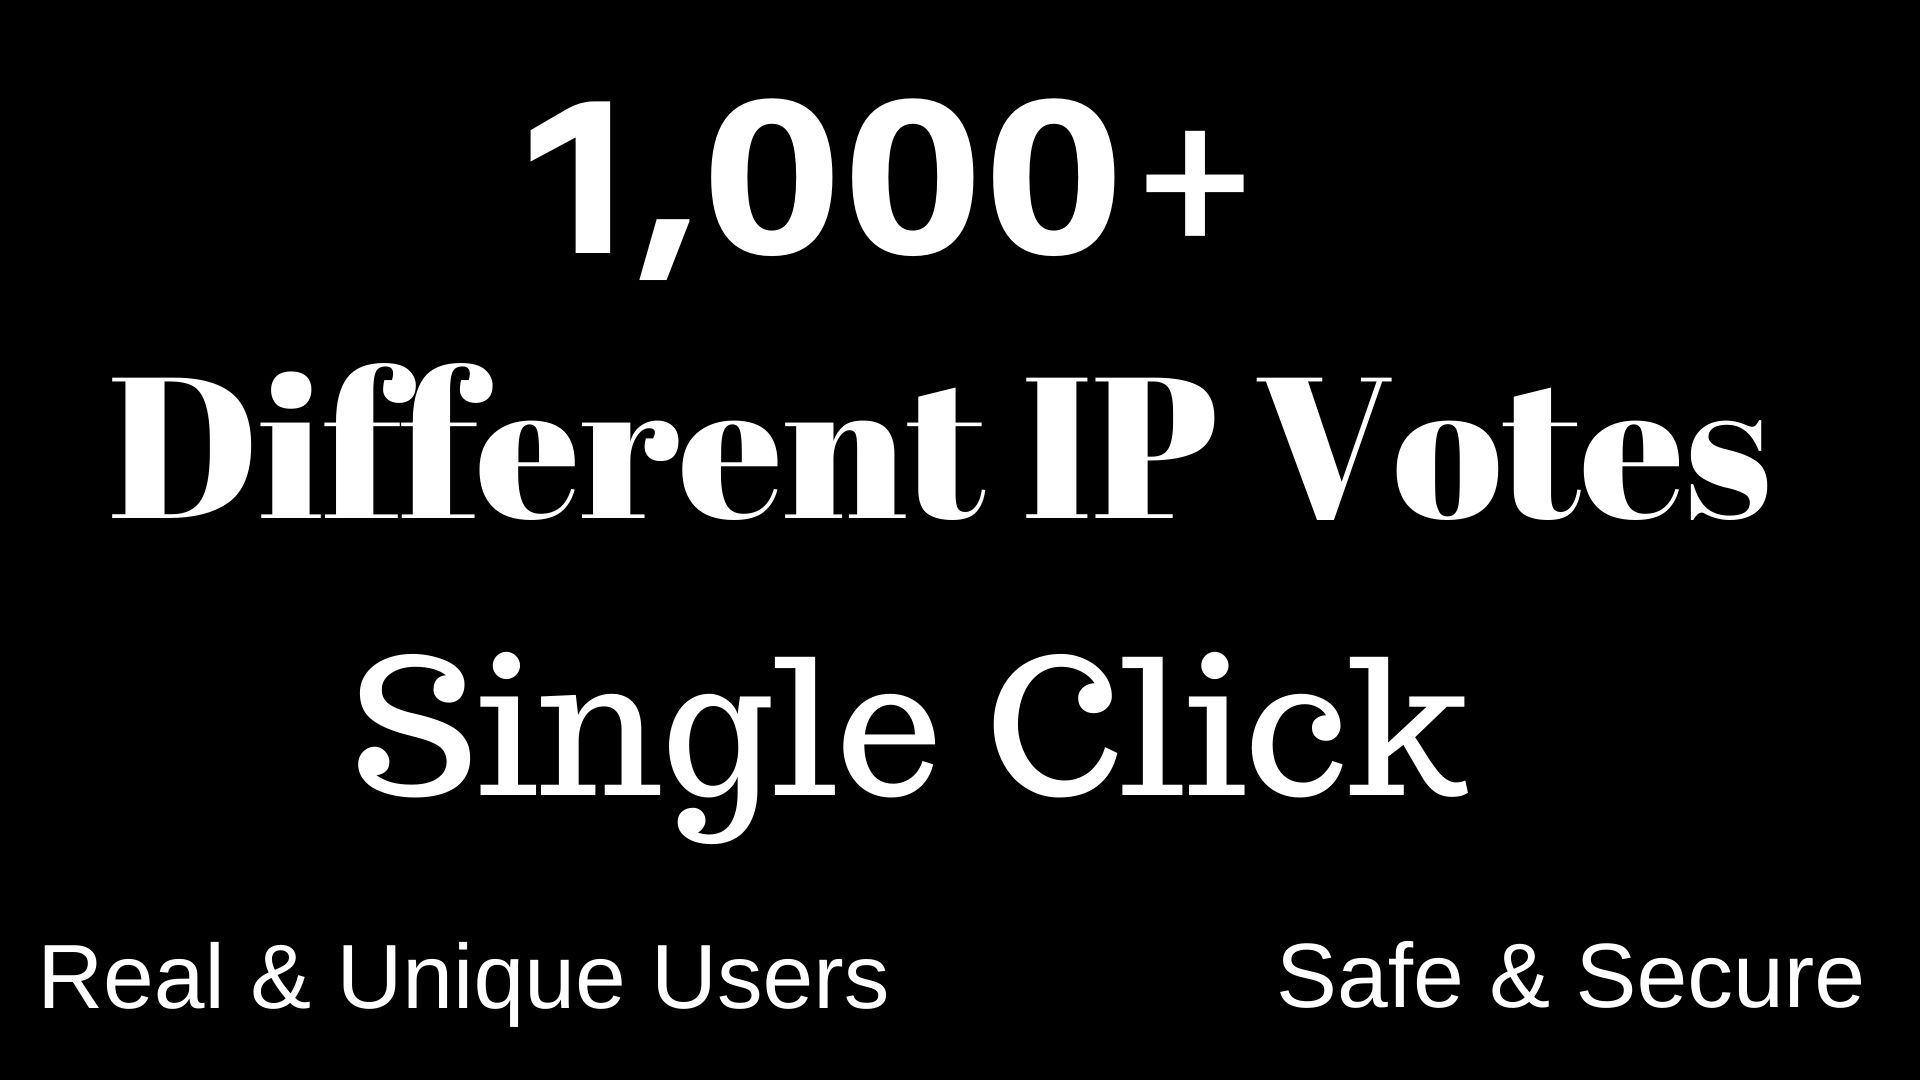 Manage 1,000+ Different and targeted country IP Votes Single Click